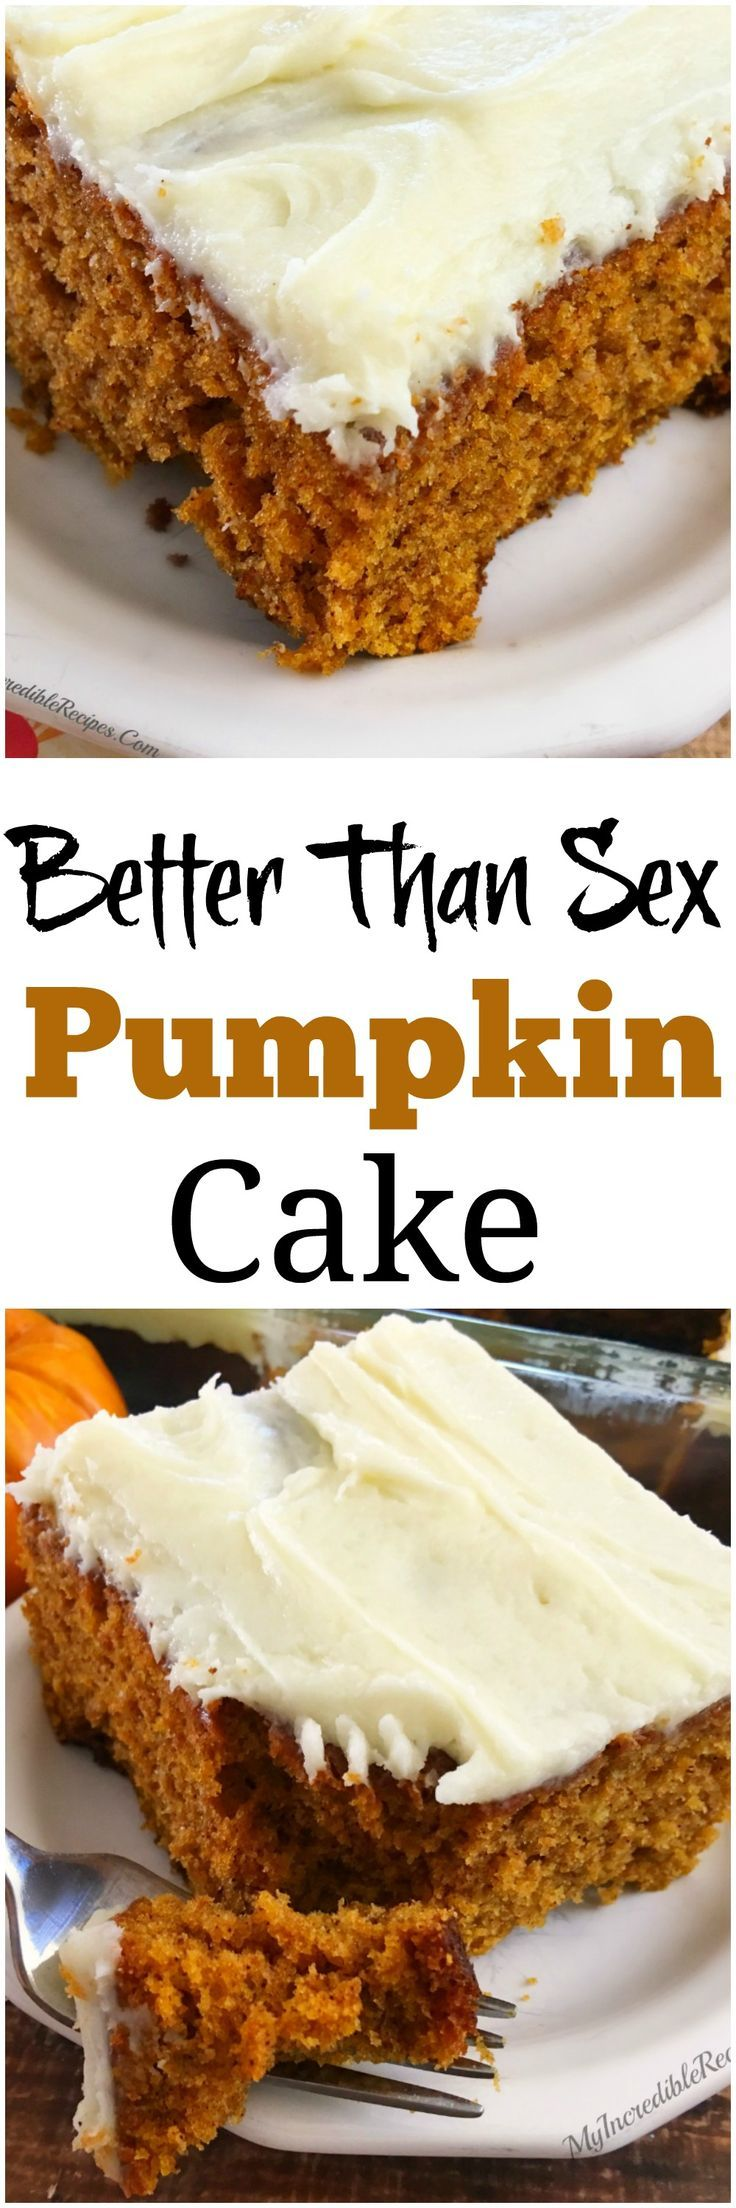 Better than Sex PUMPKIN Cake!